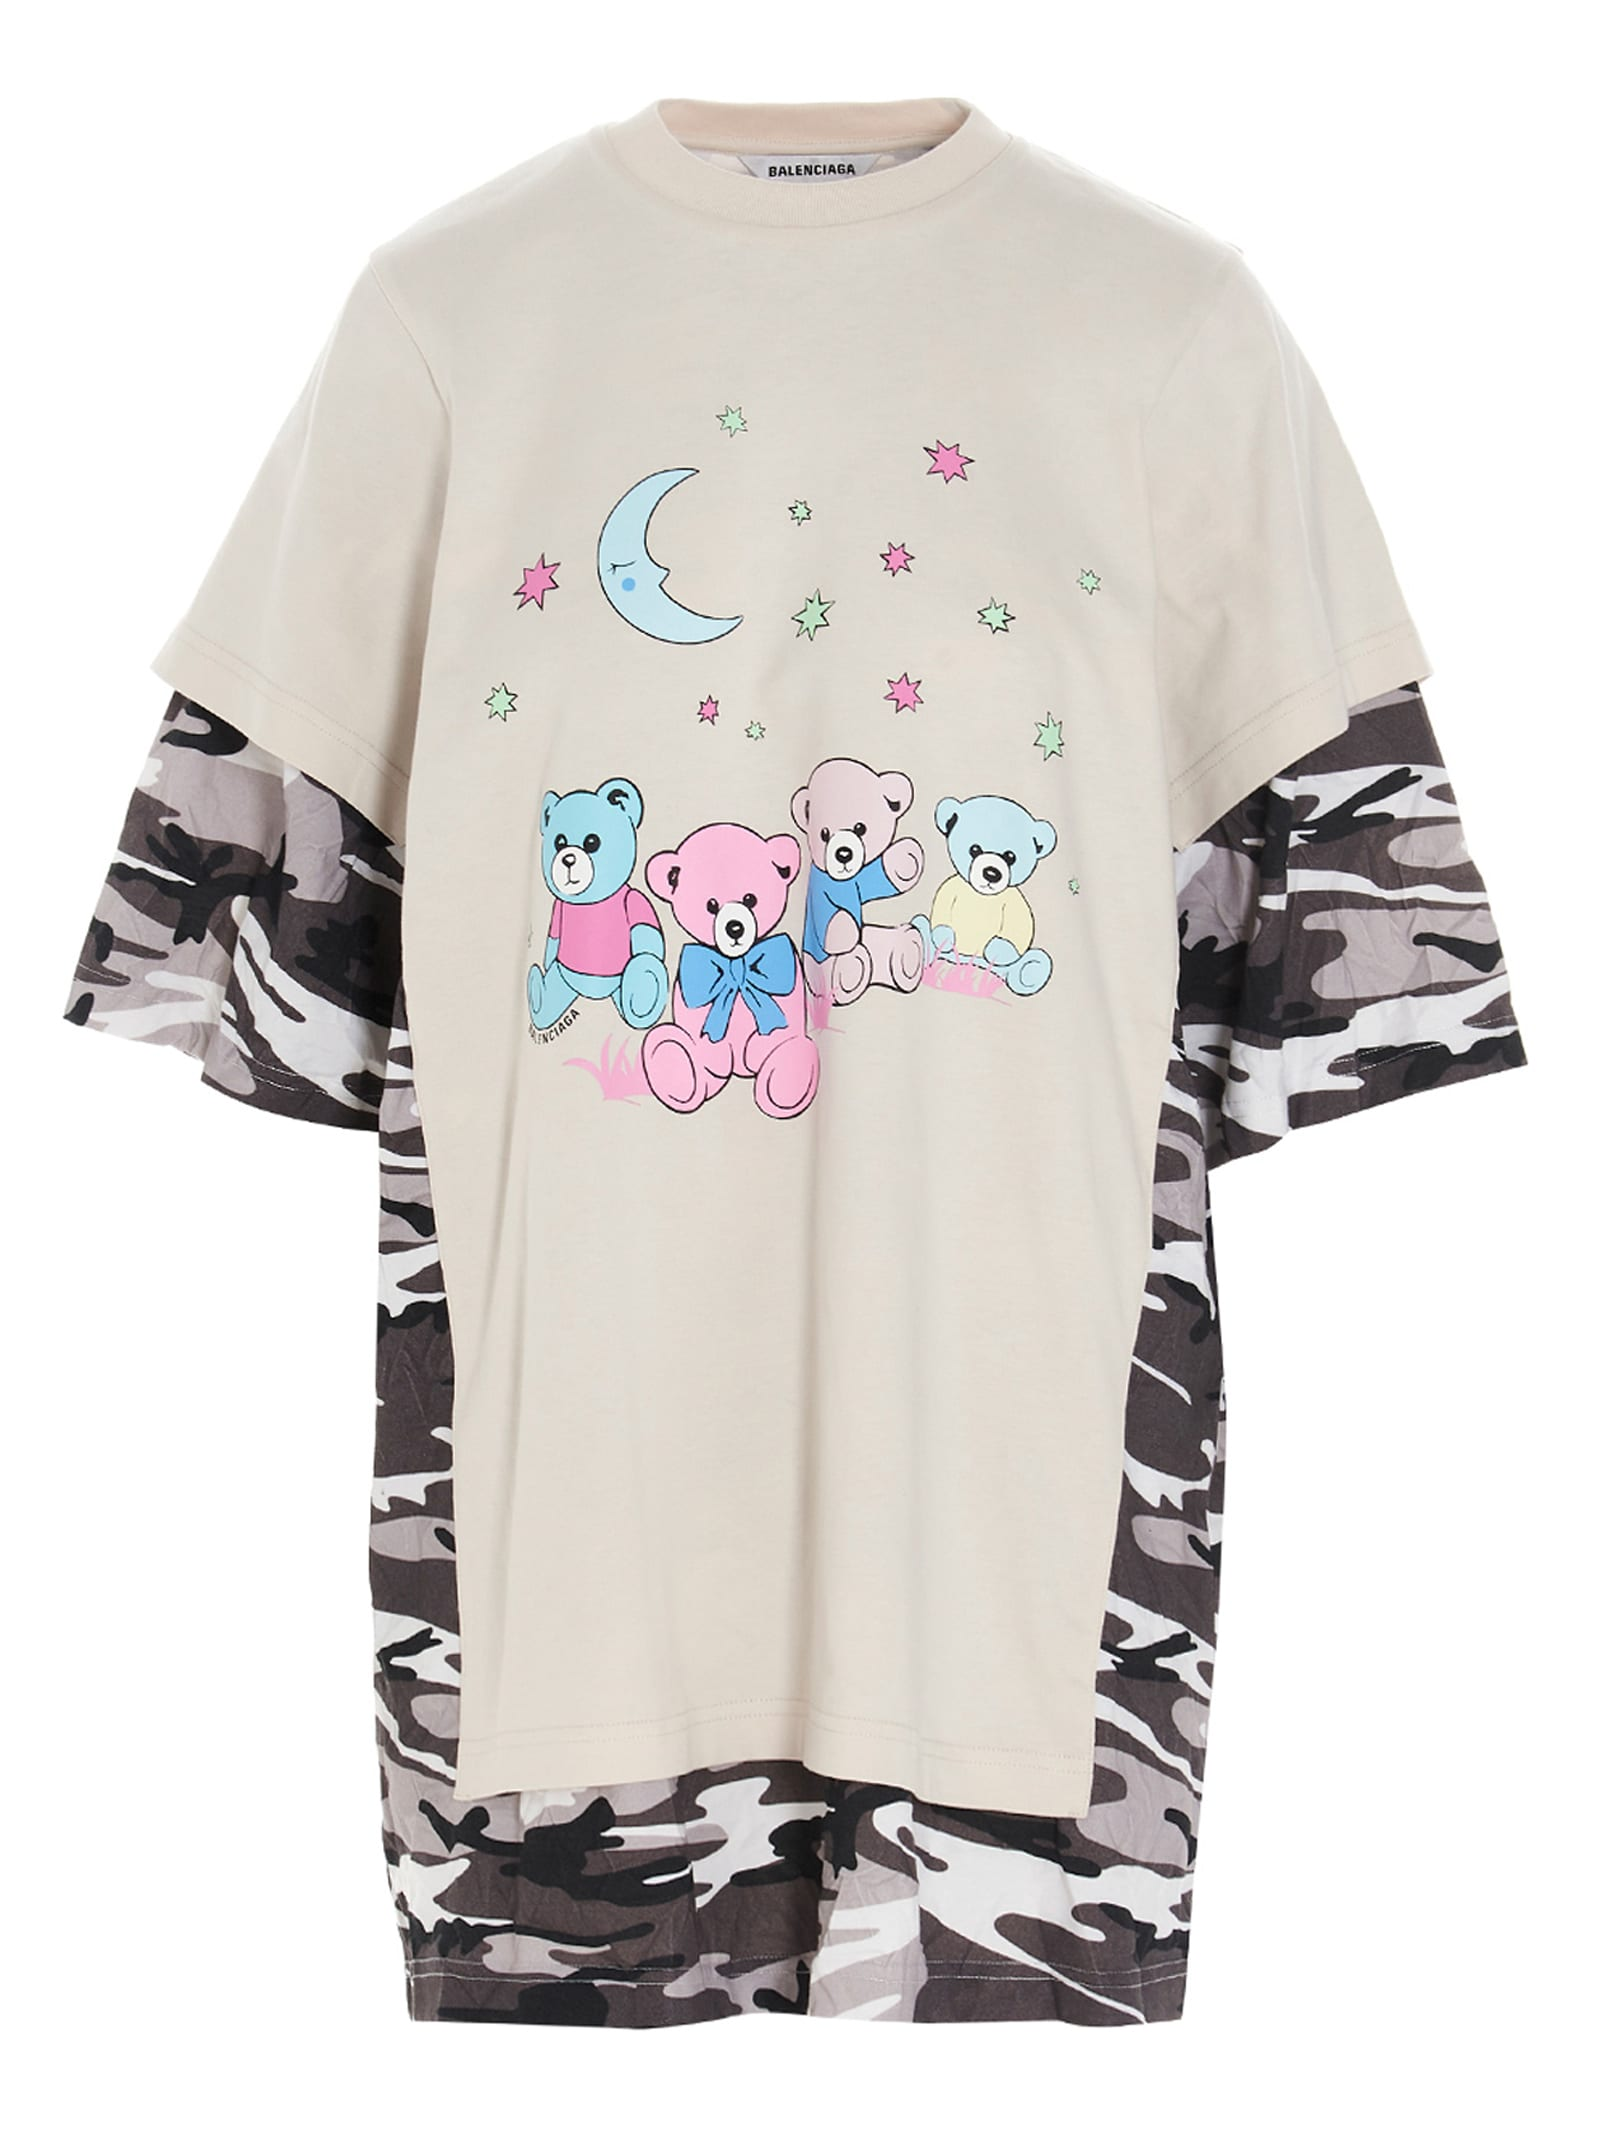 Balenciaga TEDDY BEARS T-SHIRT